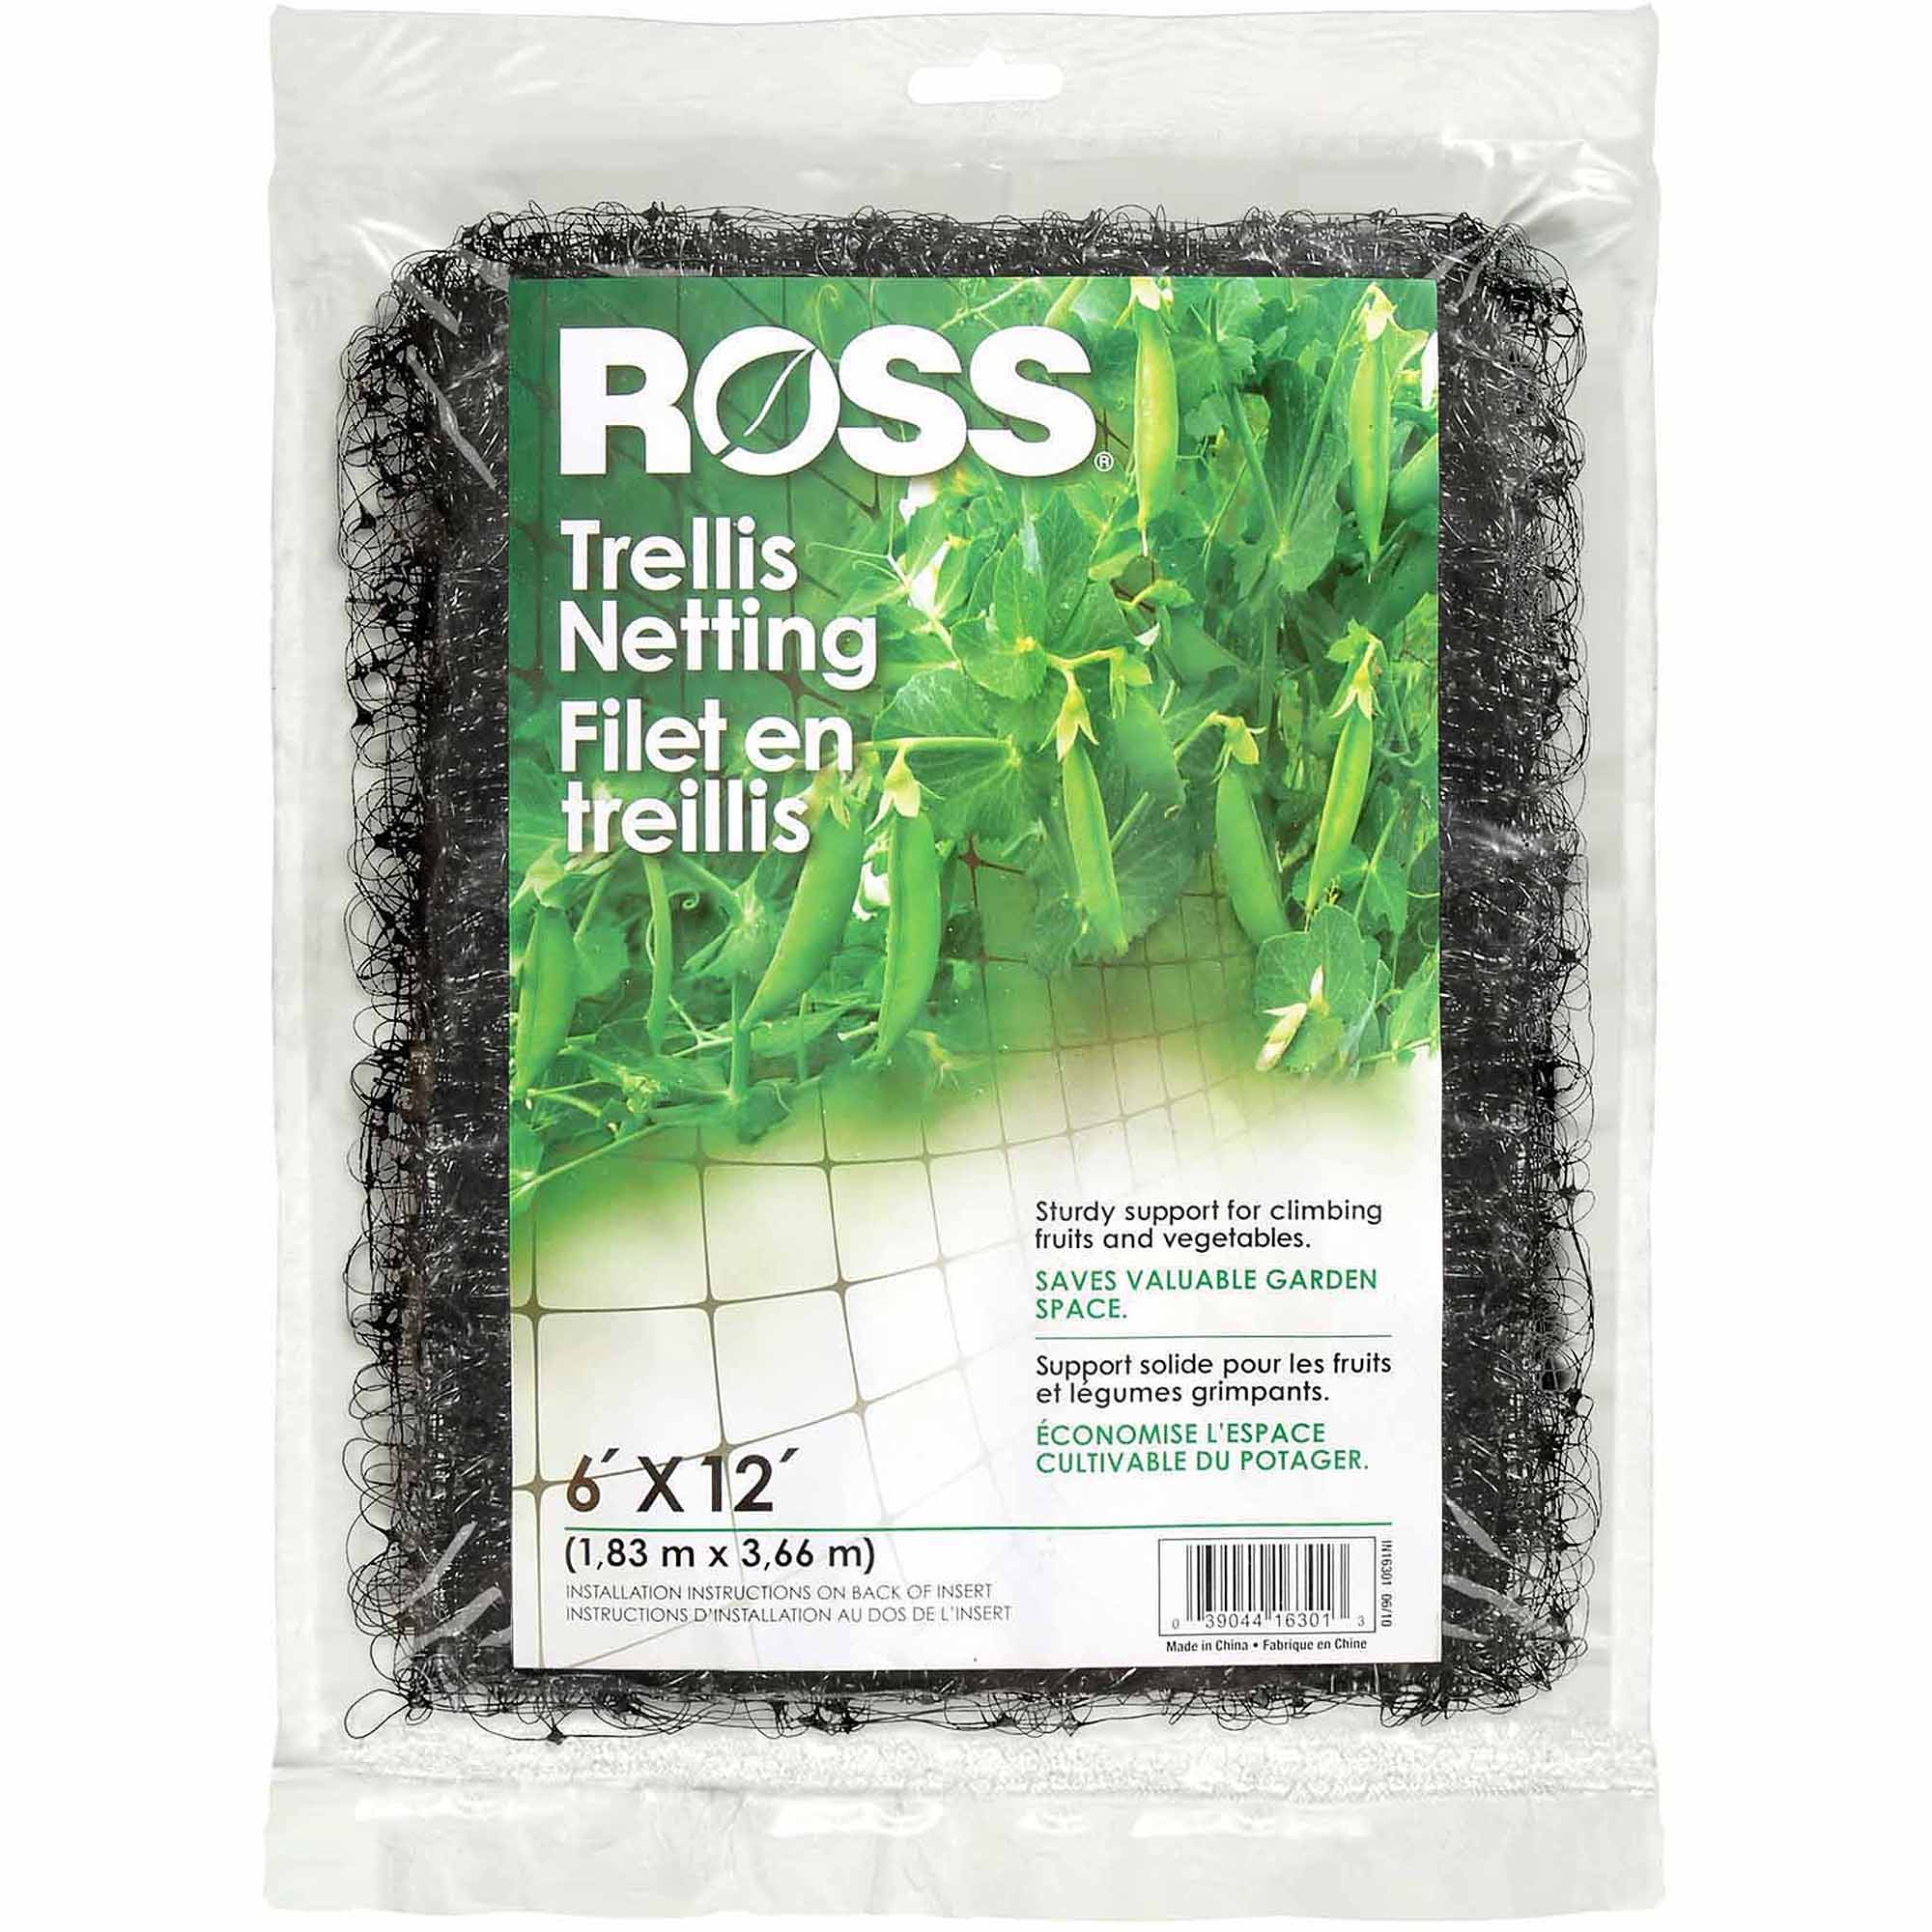 Ross Easy Gardener/Weedblock 6' x 12' Trellis Netting